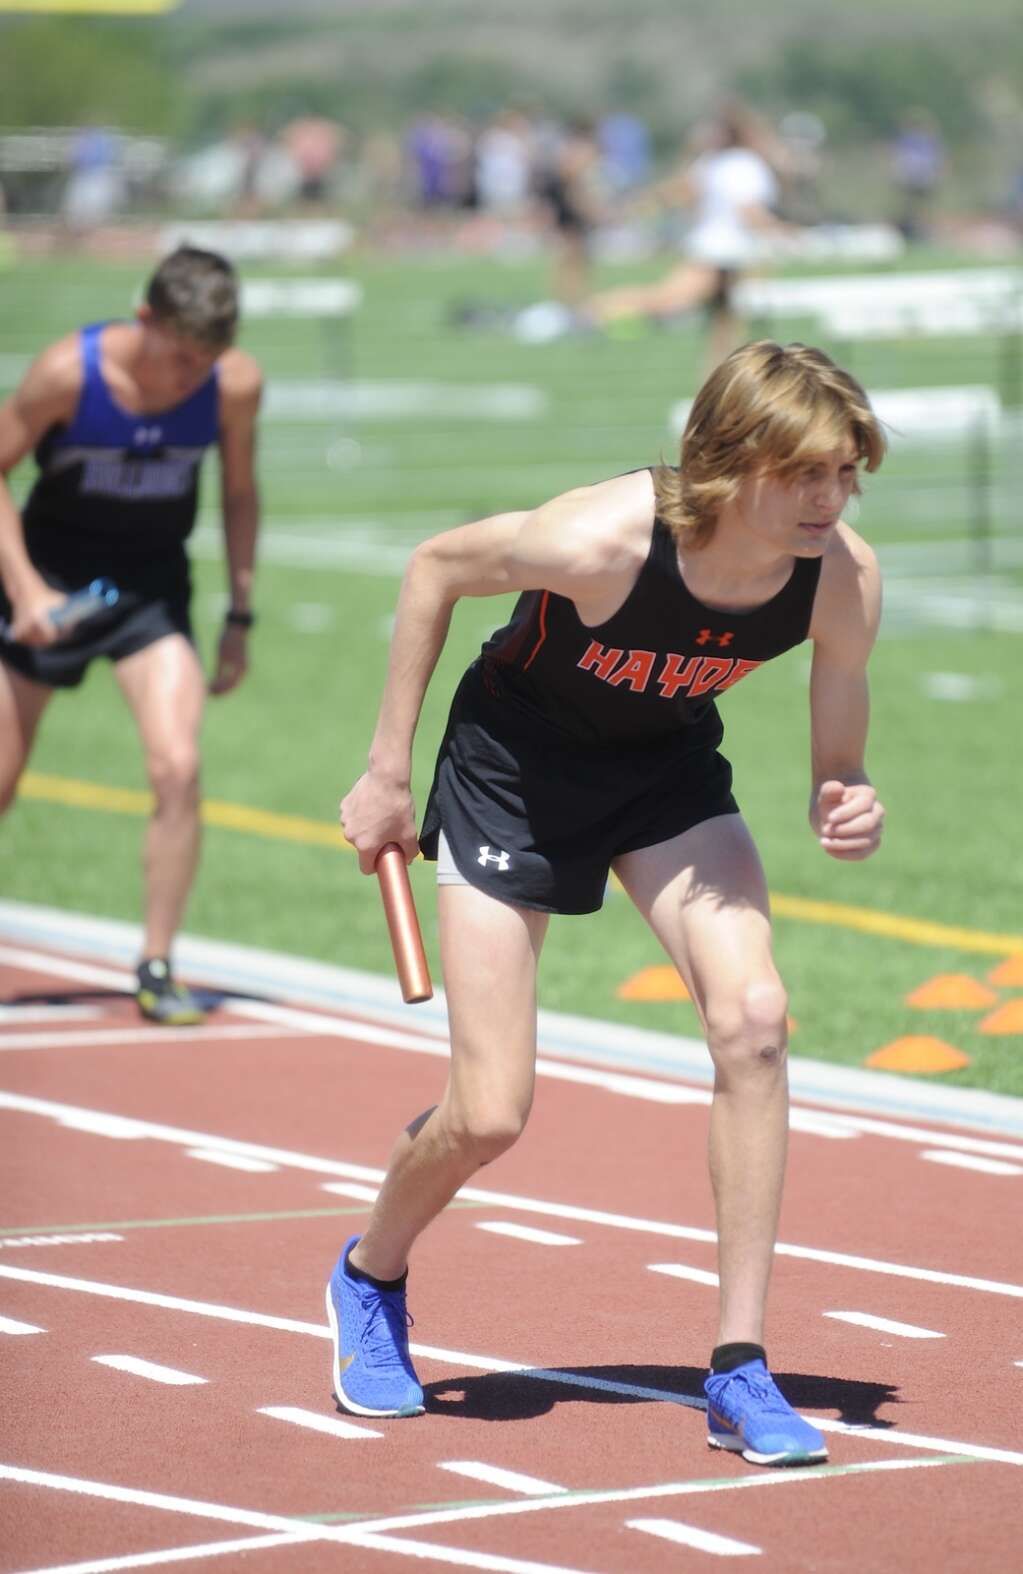 Kale Johnson gets ready to start the 4x800 relay at the Bulldog/Tiger Invite at Hayden High School on Wednesday. (Shelby Reardon)